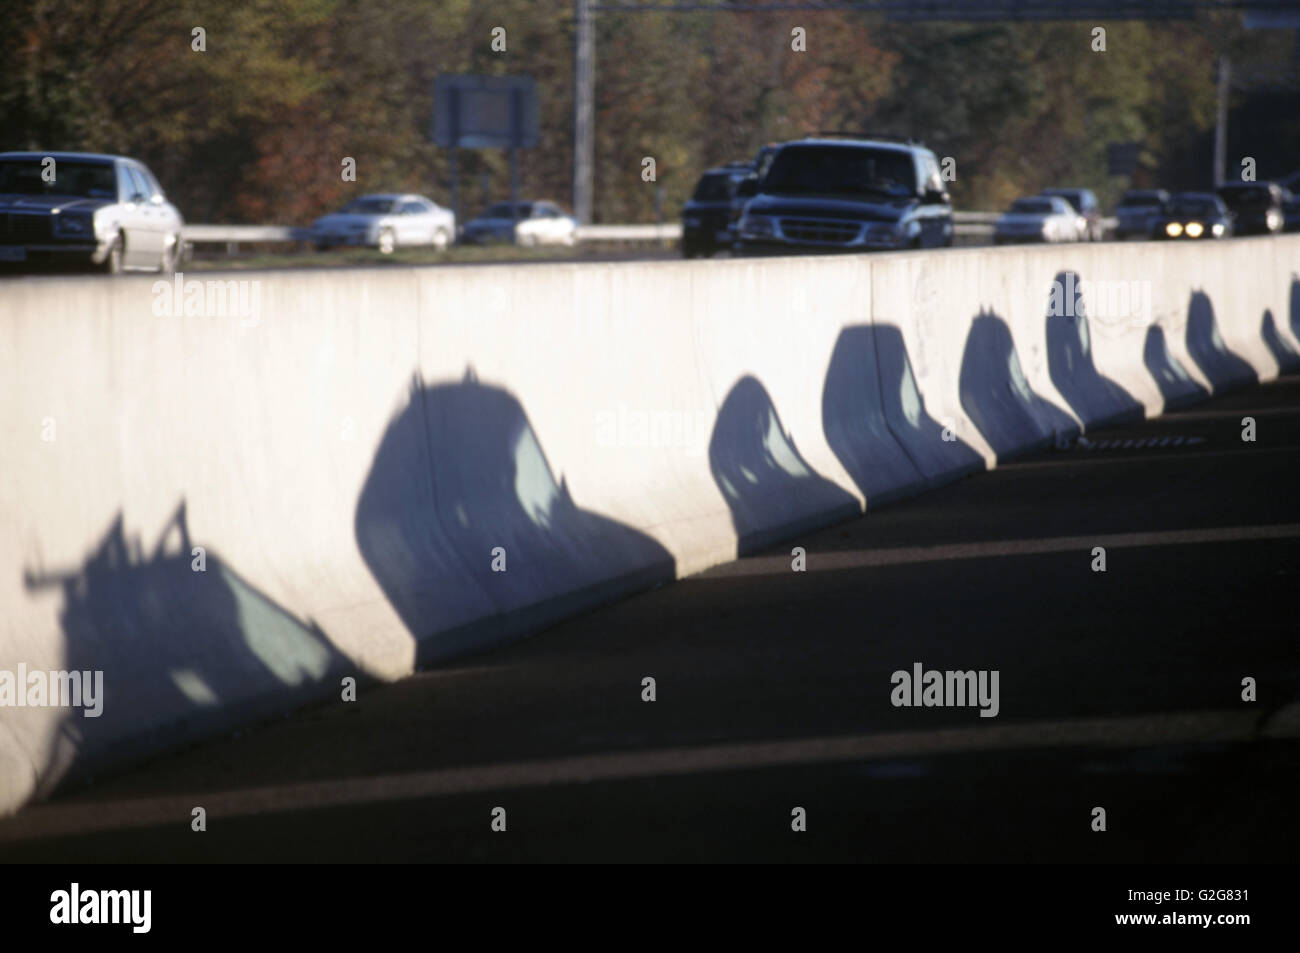 Highway Traffic. Cars shadows appear on concrete median barrier - Stock Image